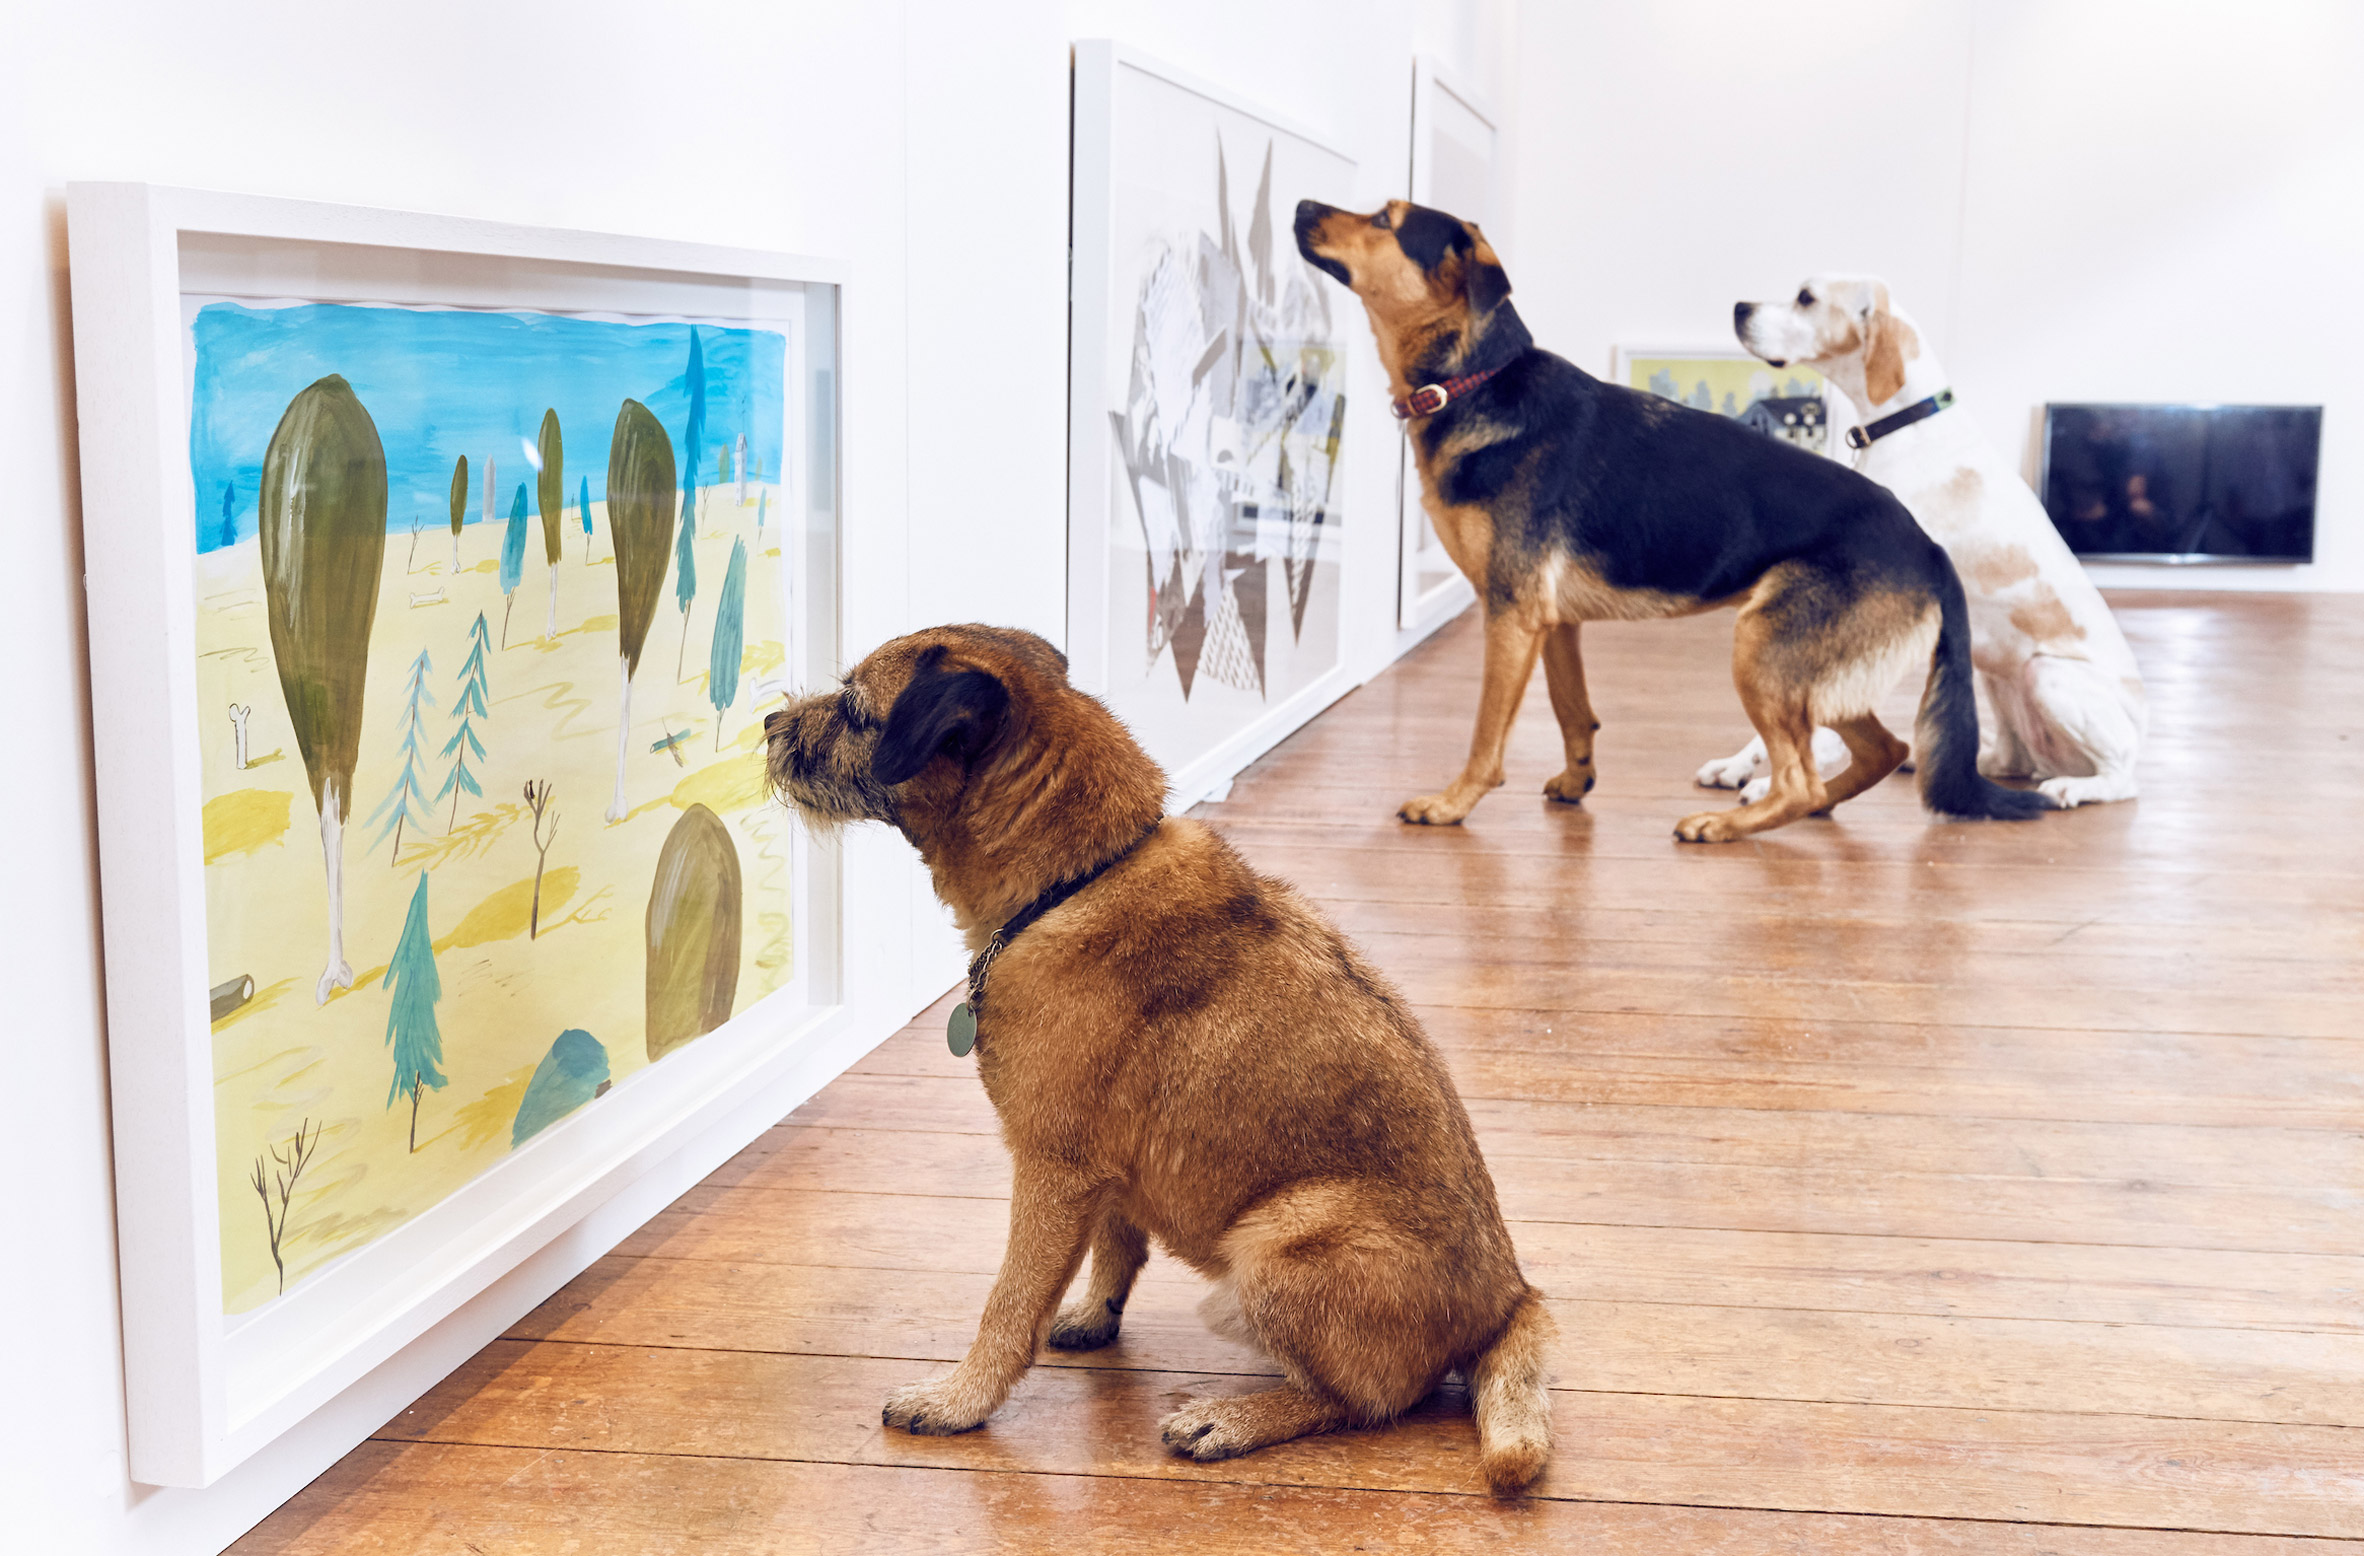 Worlds first art exhibition for dogs features fountains fans worlds first art exhibition for dogs features fountains fans cars urbanist malvernweather Images